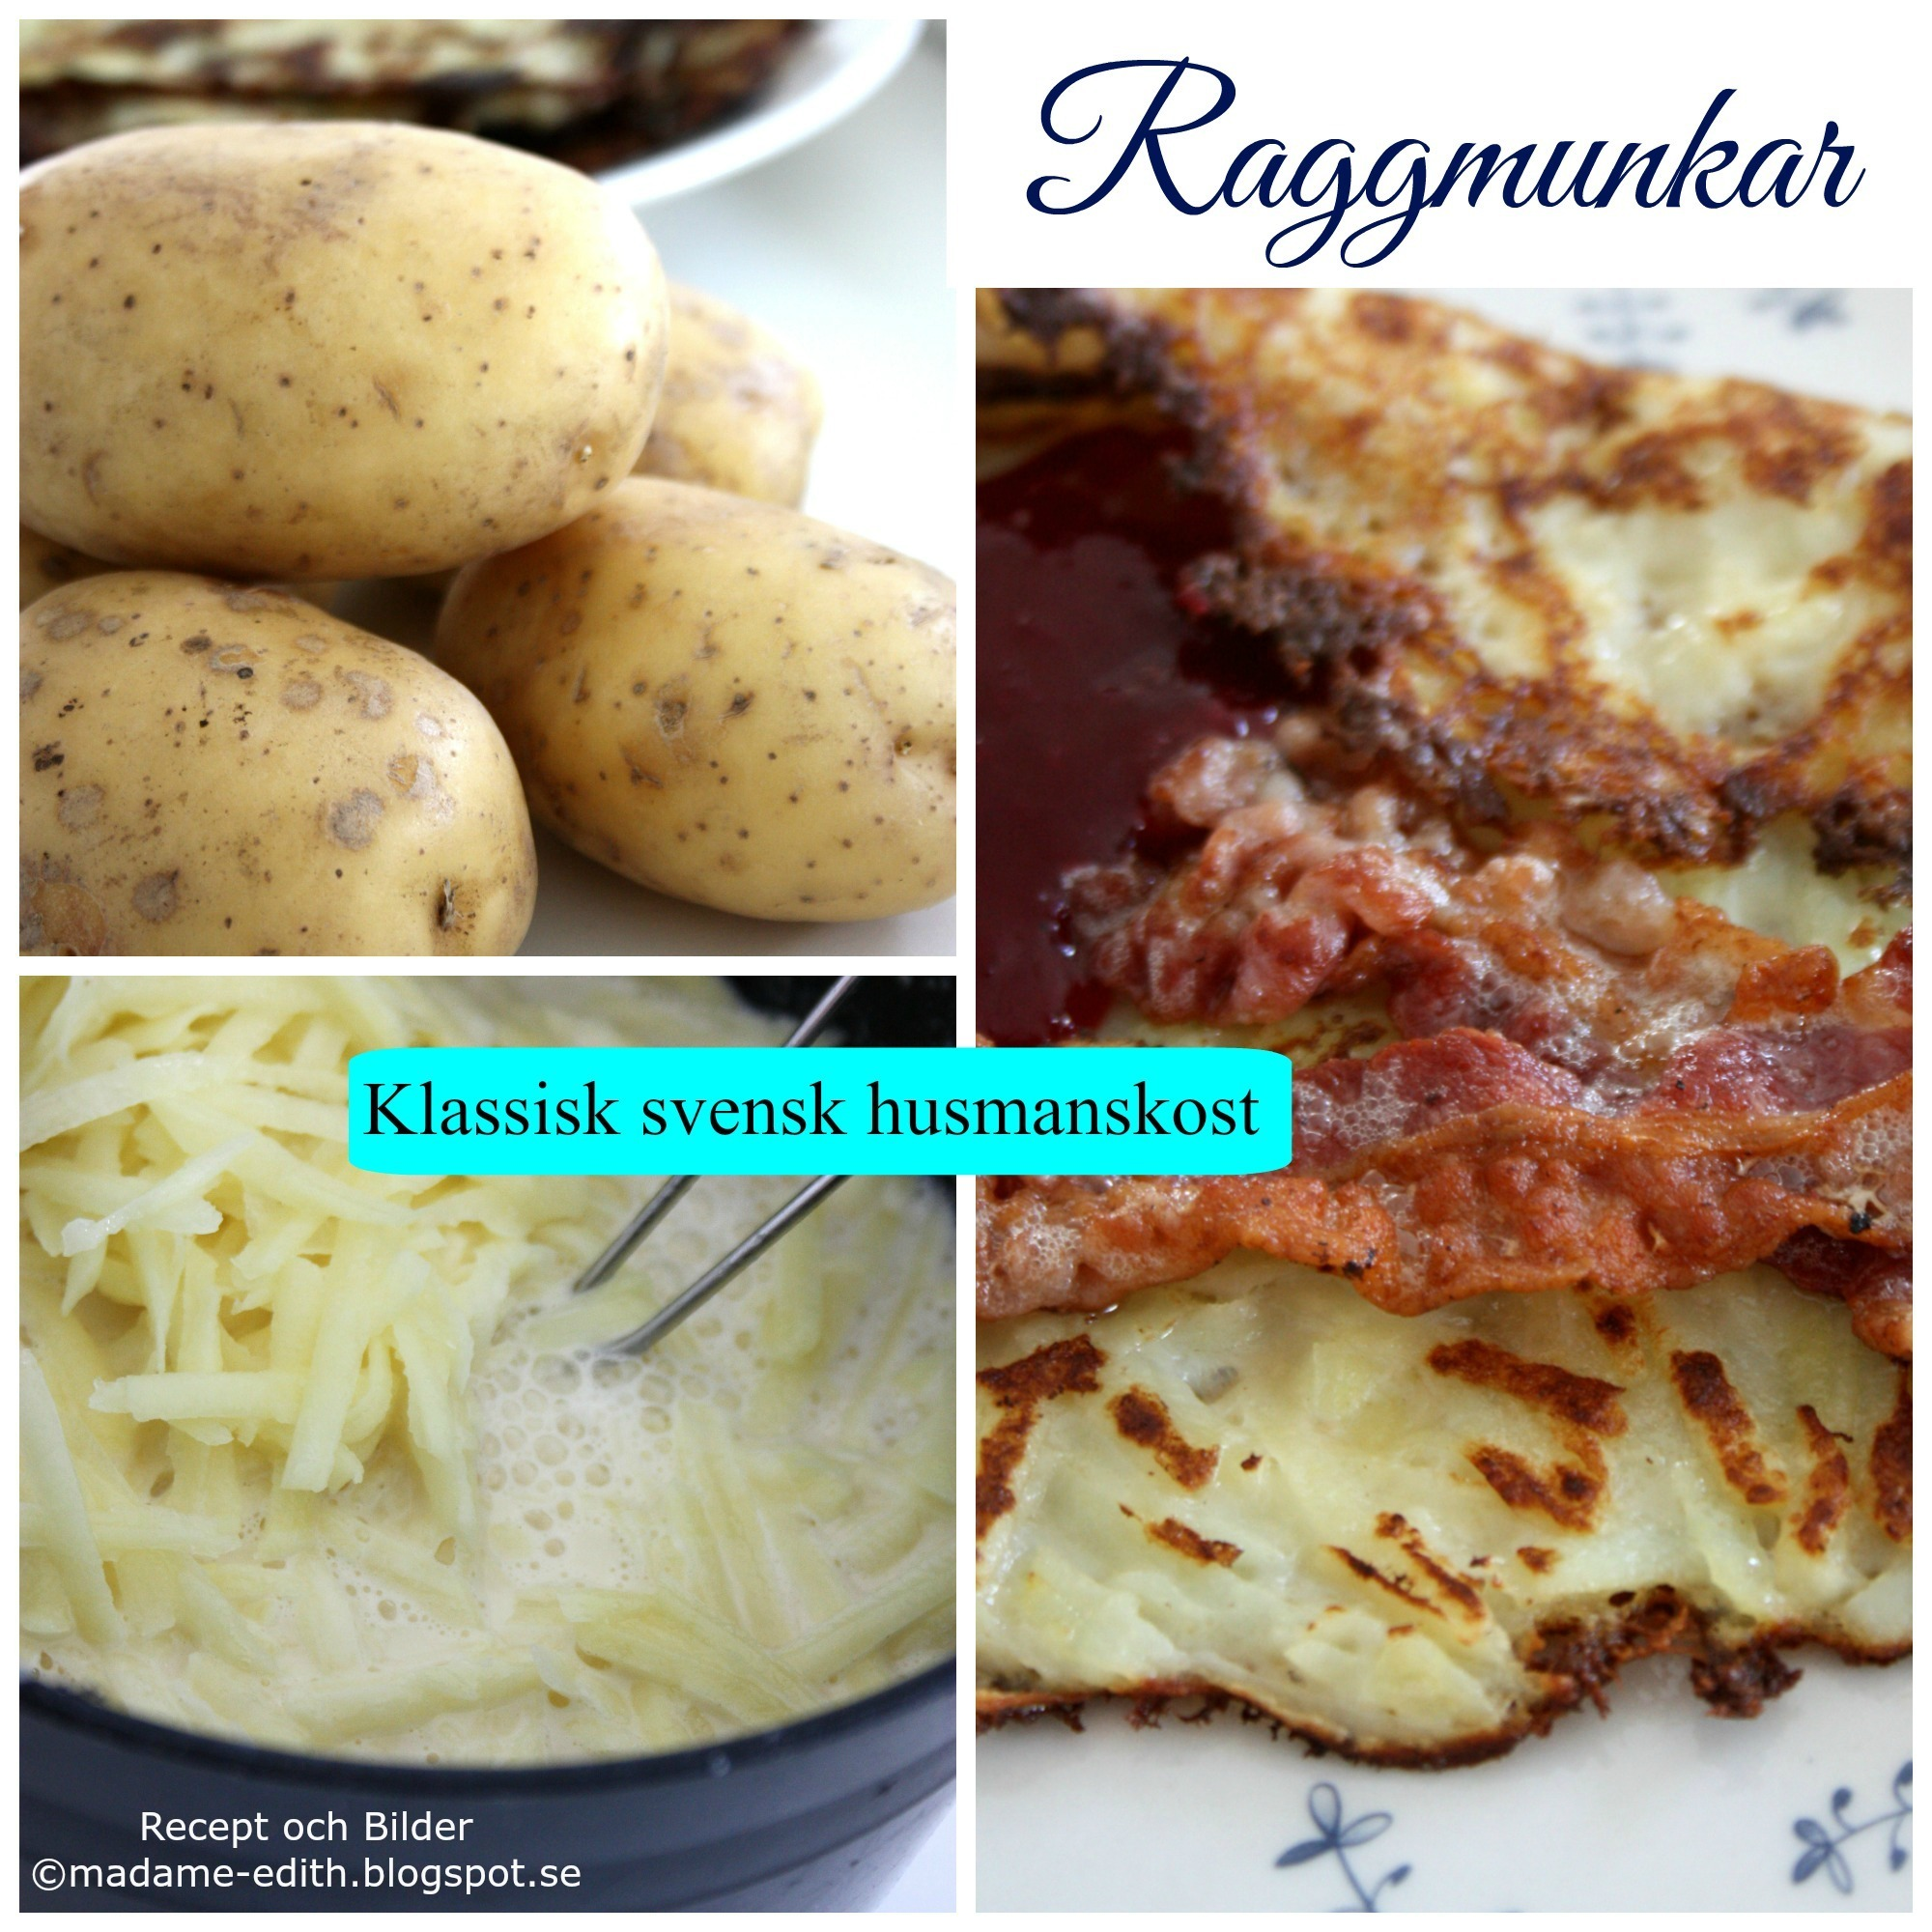 Madame Edith - Recept: Raggmunkar